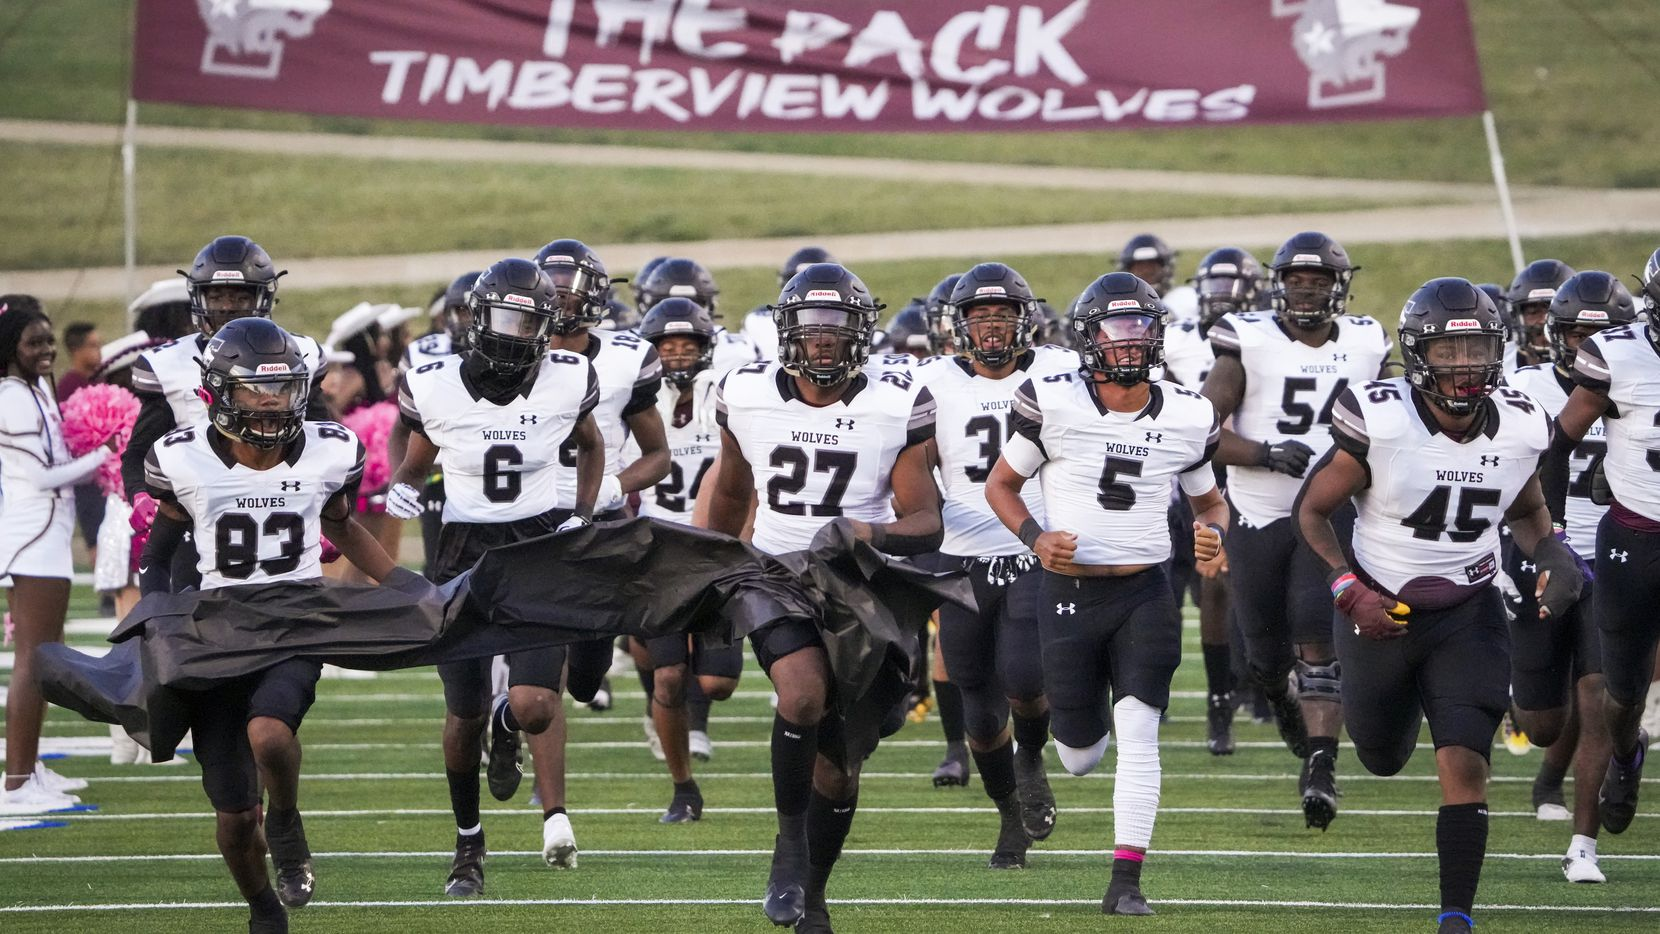 Mansfield Timberview take the field before facing Waco University in a high school football game at Waco ISD Stadium on Friday, Oct. 8, 2021, in Waco, Texas. A shooting following a classroom fight on Wednesday injured four people at Timberview High School.(Smiley N. Pool/The Dallas Morning News)